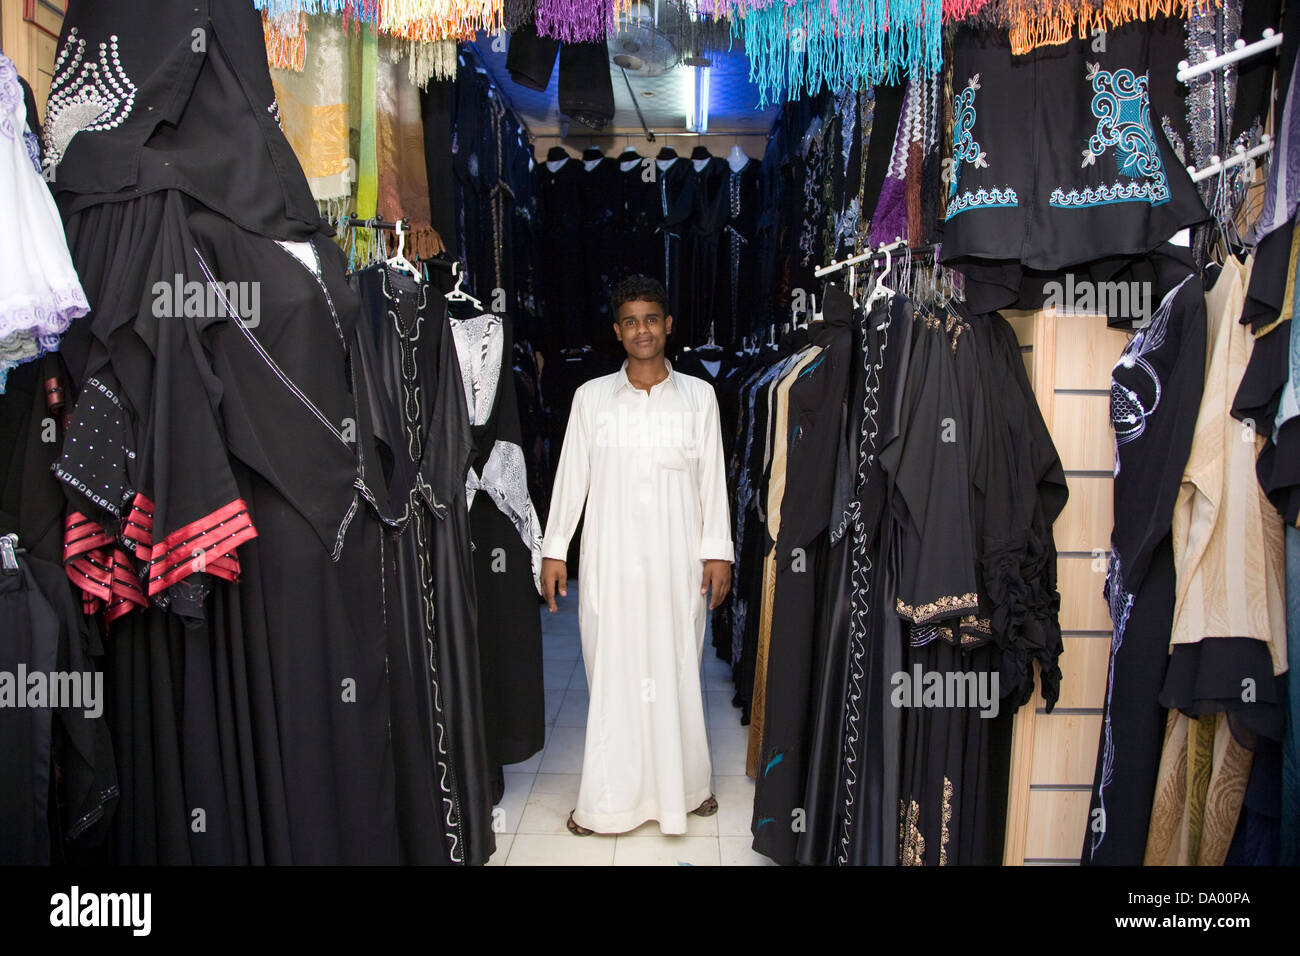 Saudi arabia clothing stores